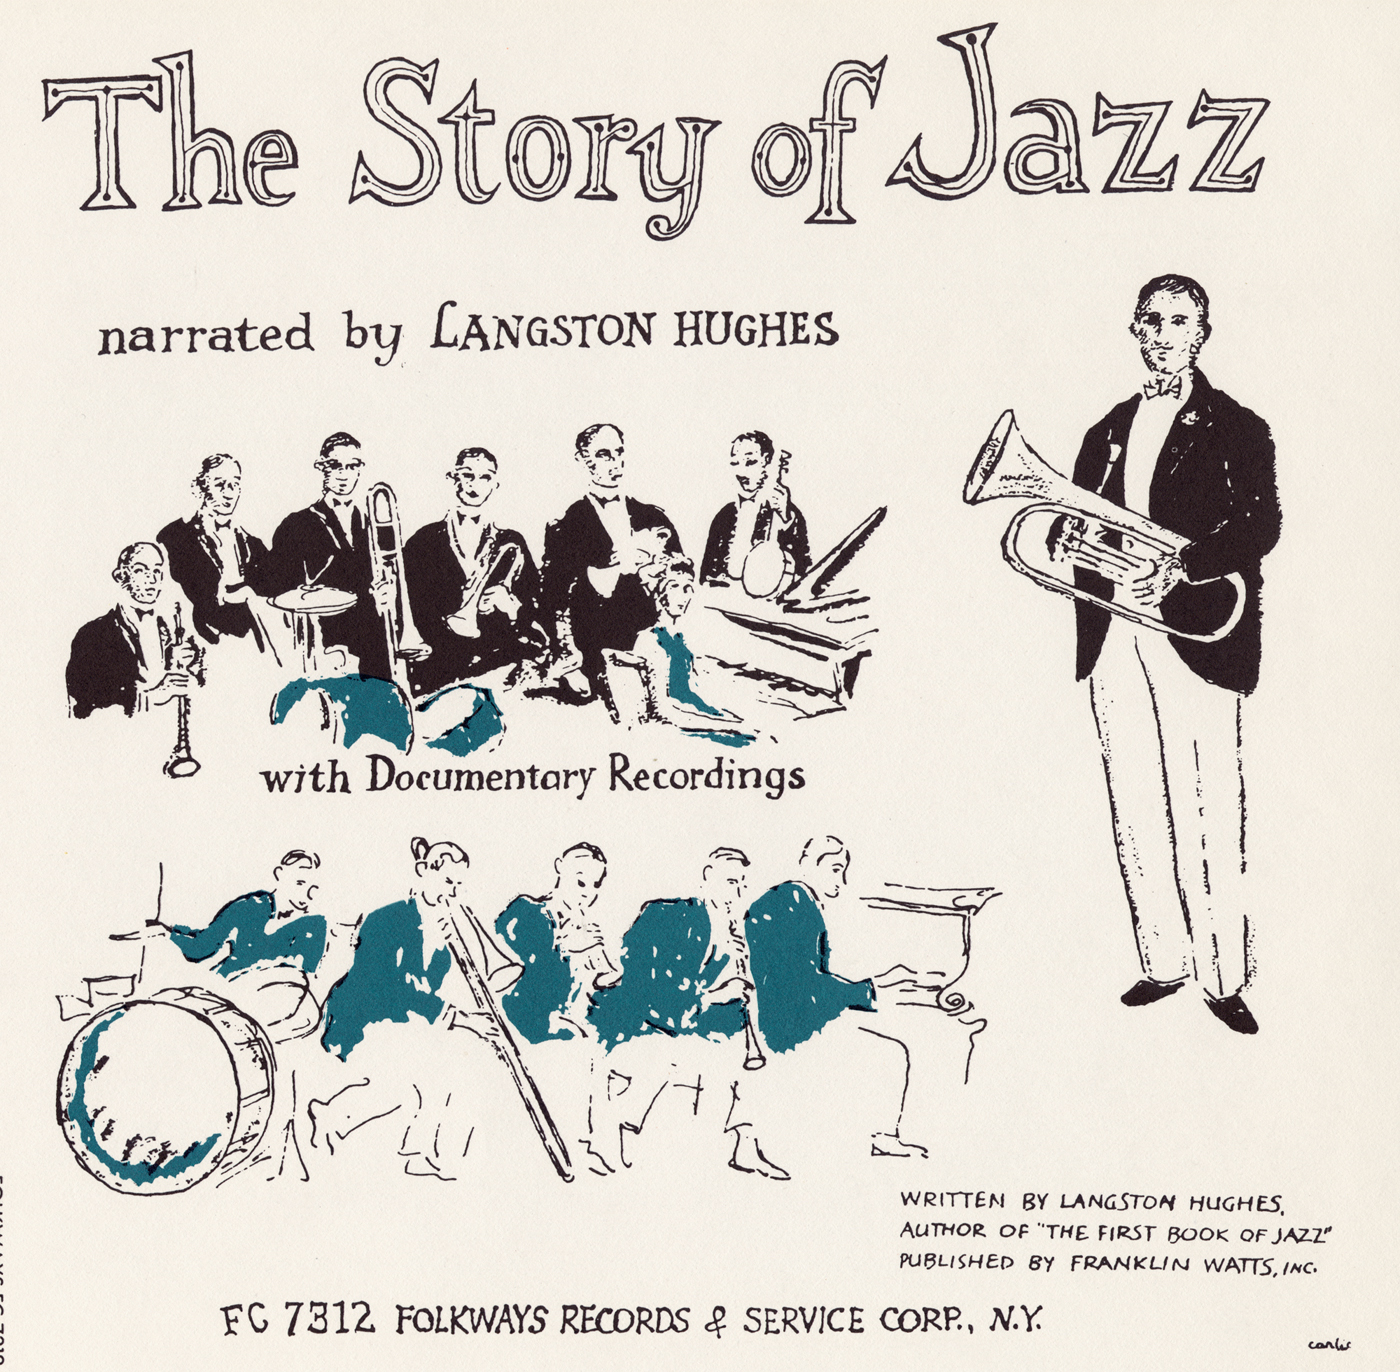 history of jazz vs history of Contact us a new orleans jazz history, 1895-1927 the early development of jazz in new orleans is most associated with the popularity of bandleader charles buddy bolden, an uptown cornetist whose charisma and musical power became legendary.